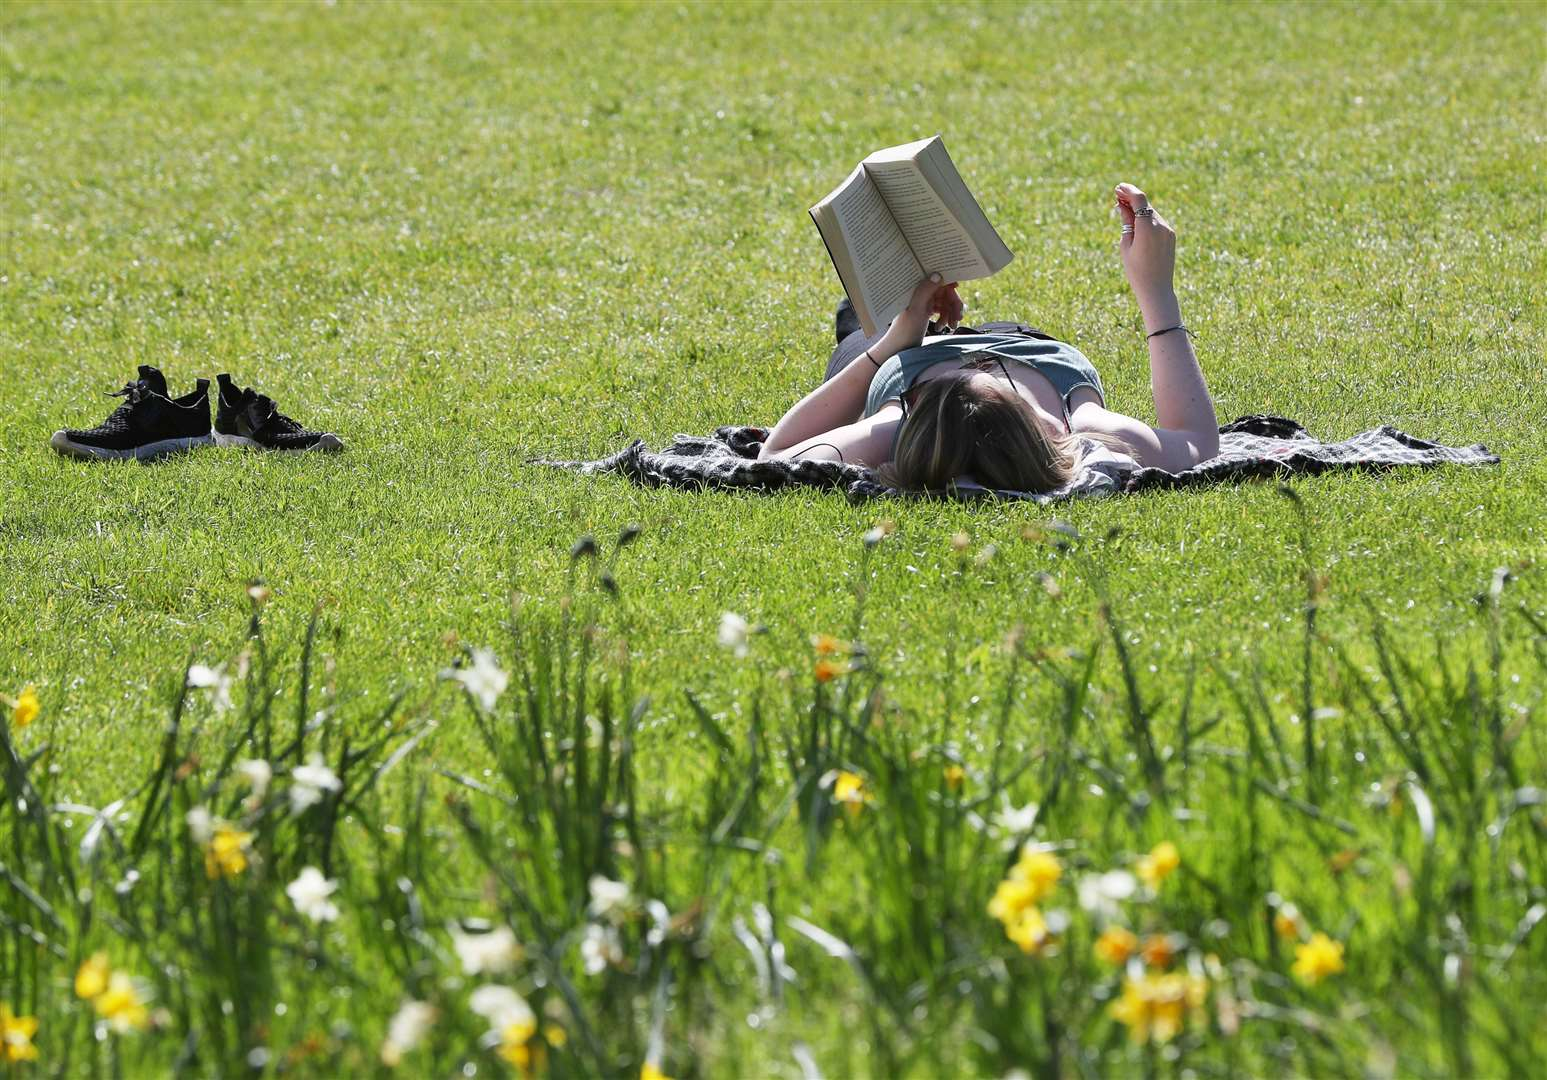 Temperatures are set to reach at least 30C this weekend